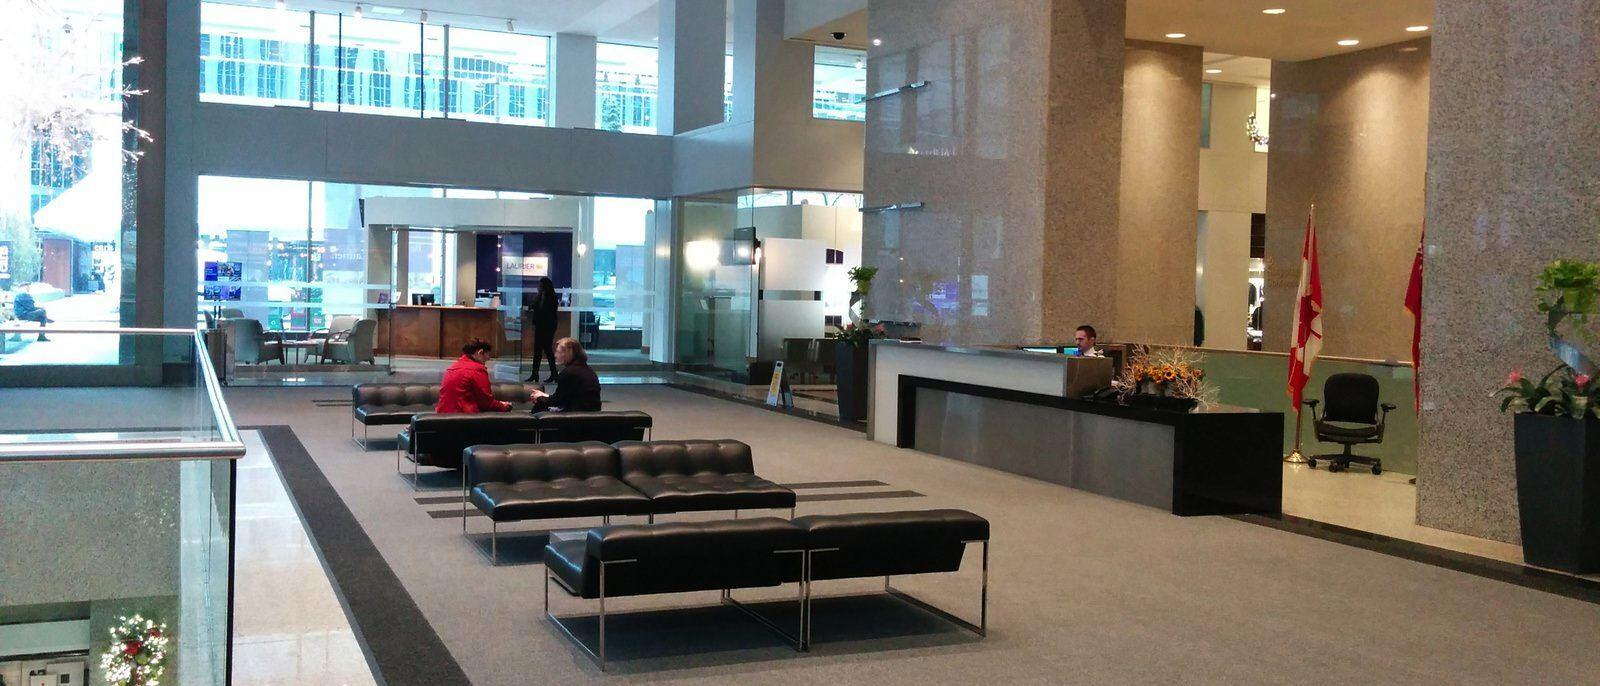 A few people sitting on furnitures that is within a large lobby inside of a big building.